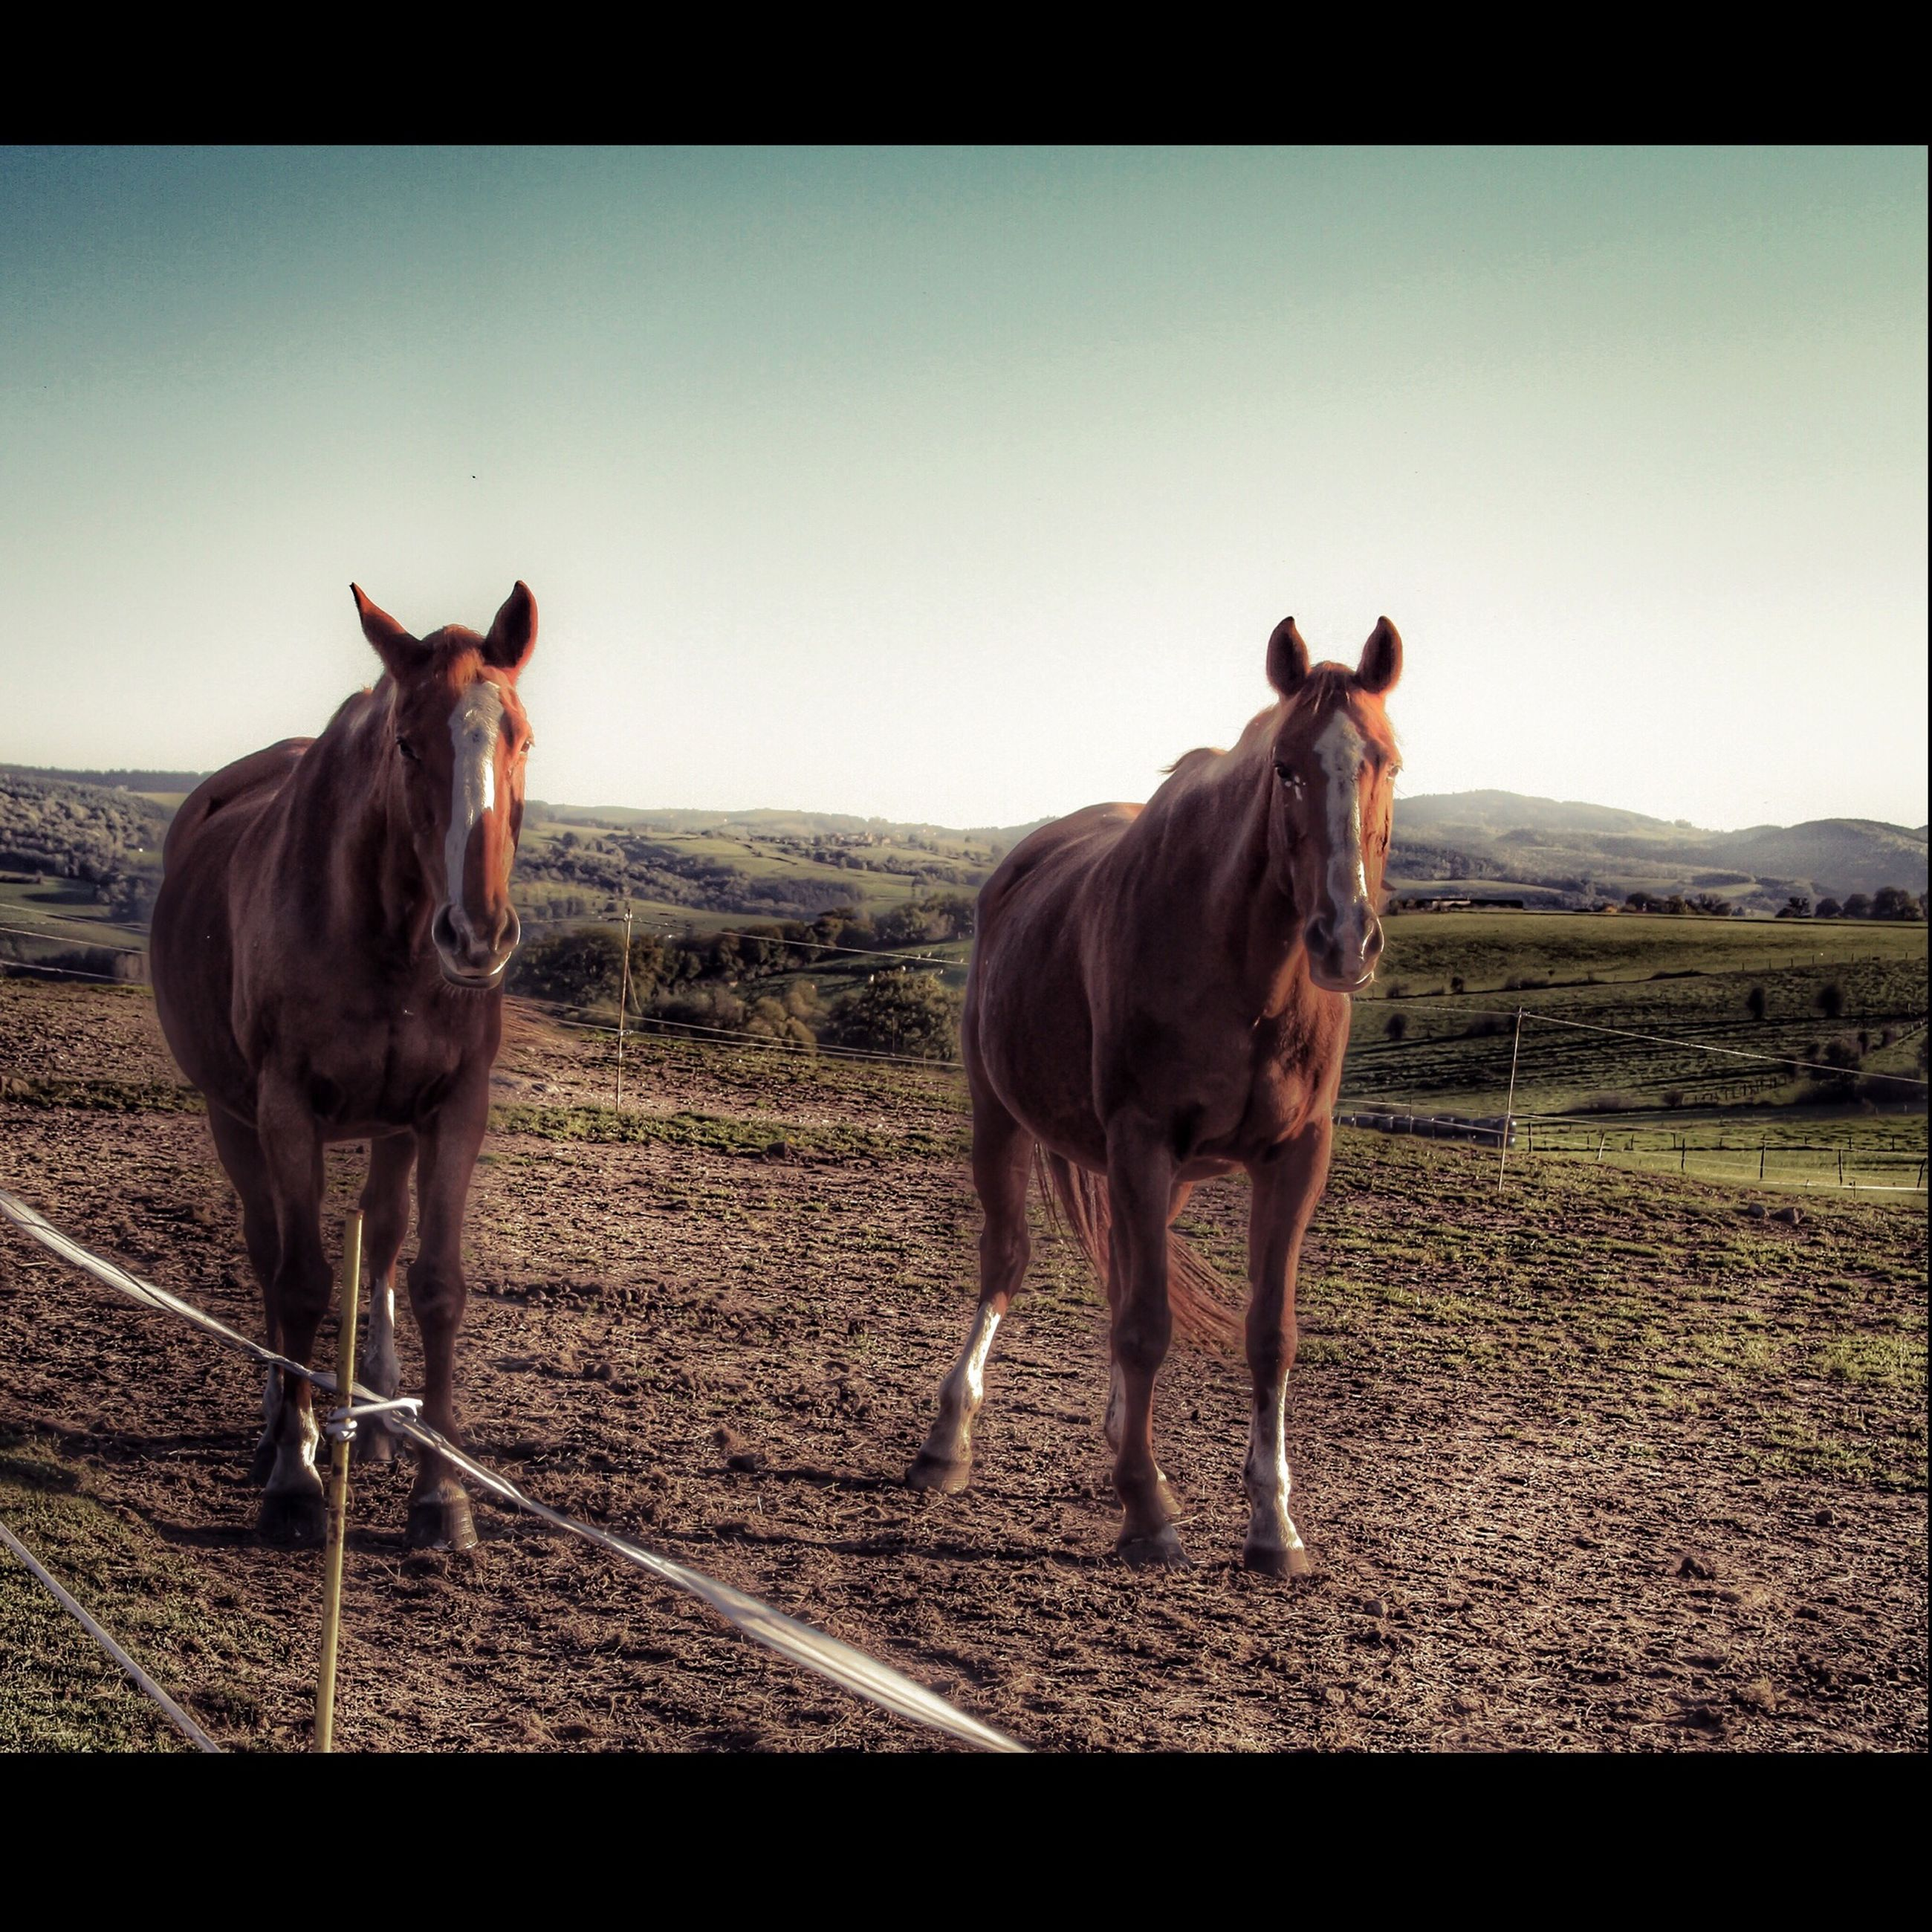 animal themes, domestic animals, mammal, clear sky, transfer print, one animal, standing, pets, copy space, auto post production filter, field, full length, horse, landscape, two animals, livestock, zoology, vertebrate, looking at camera, side view